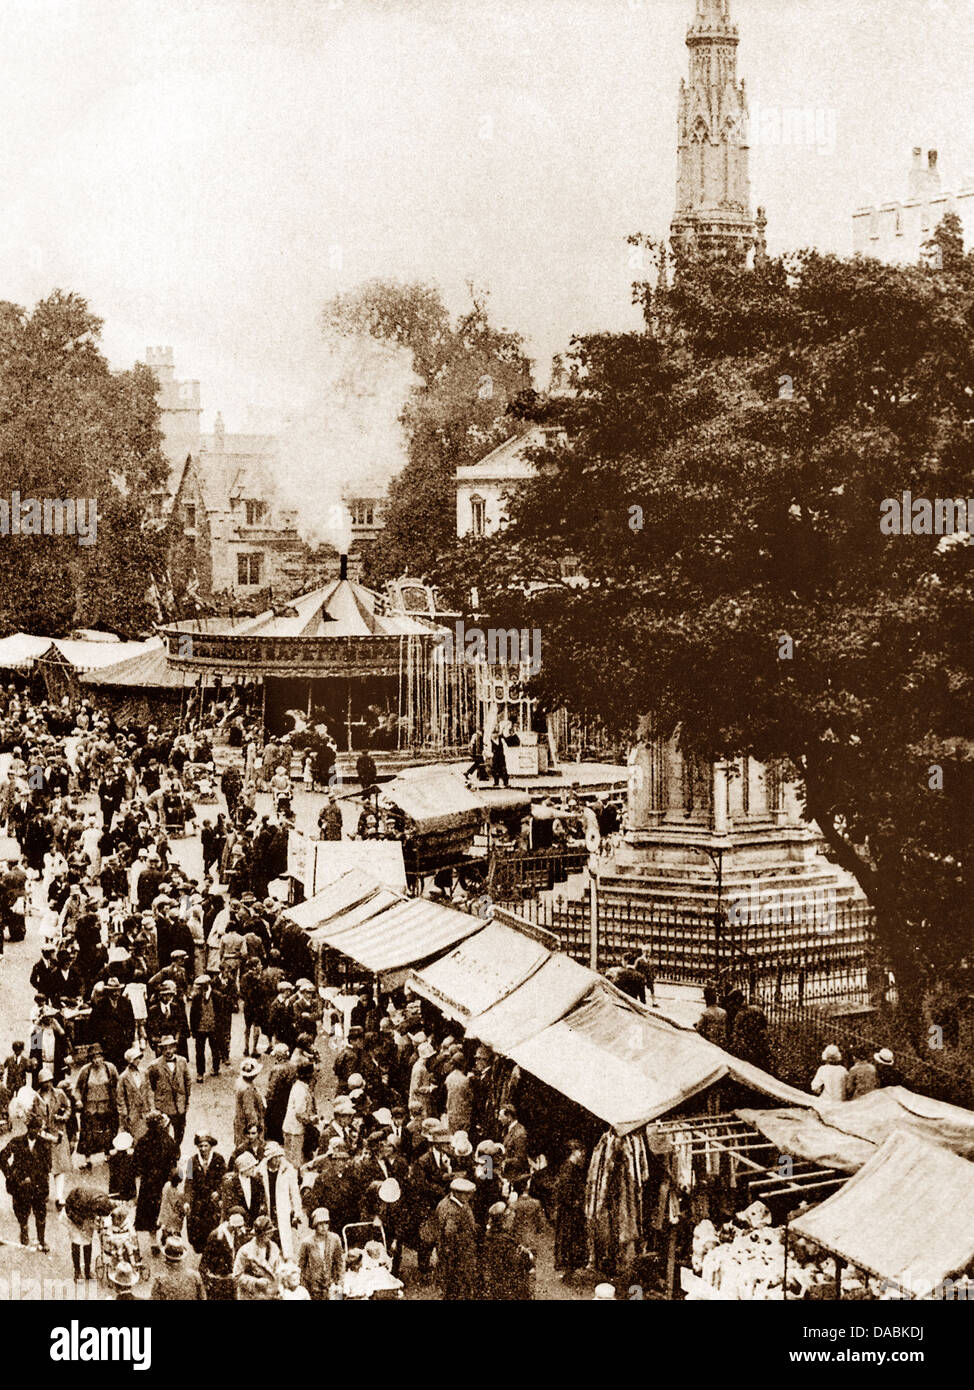 Oxford St. Giles Fair early 1900s - Stock Image